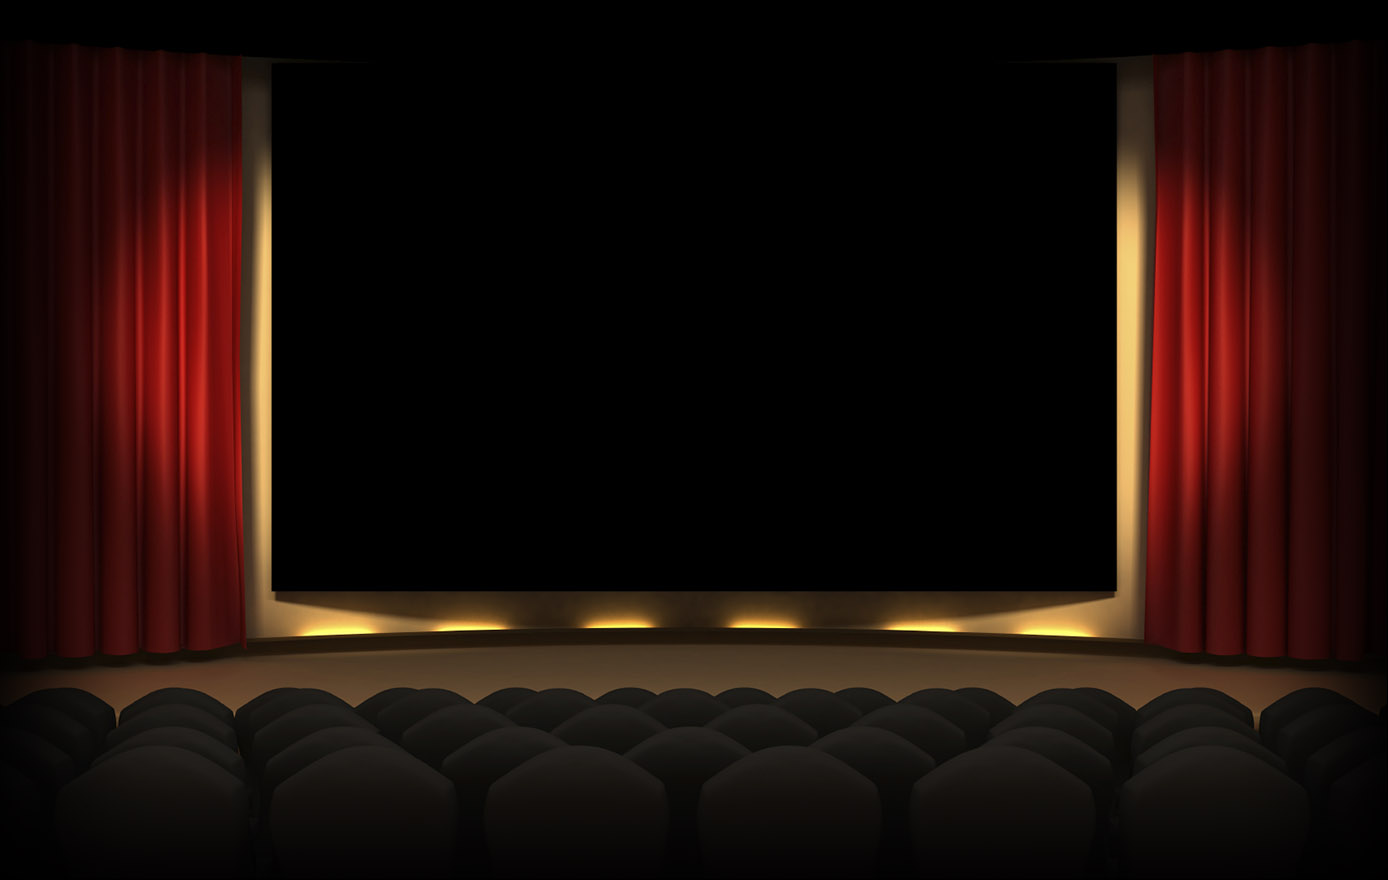 Movie Theater Wallpaper - WallpaperSafari